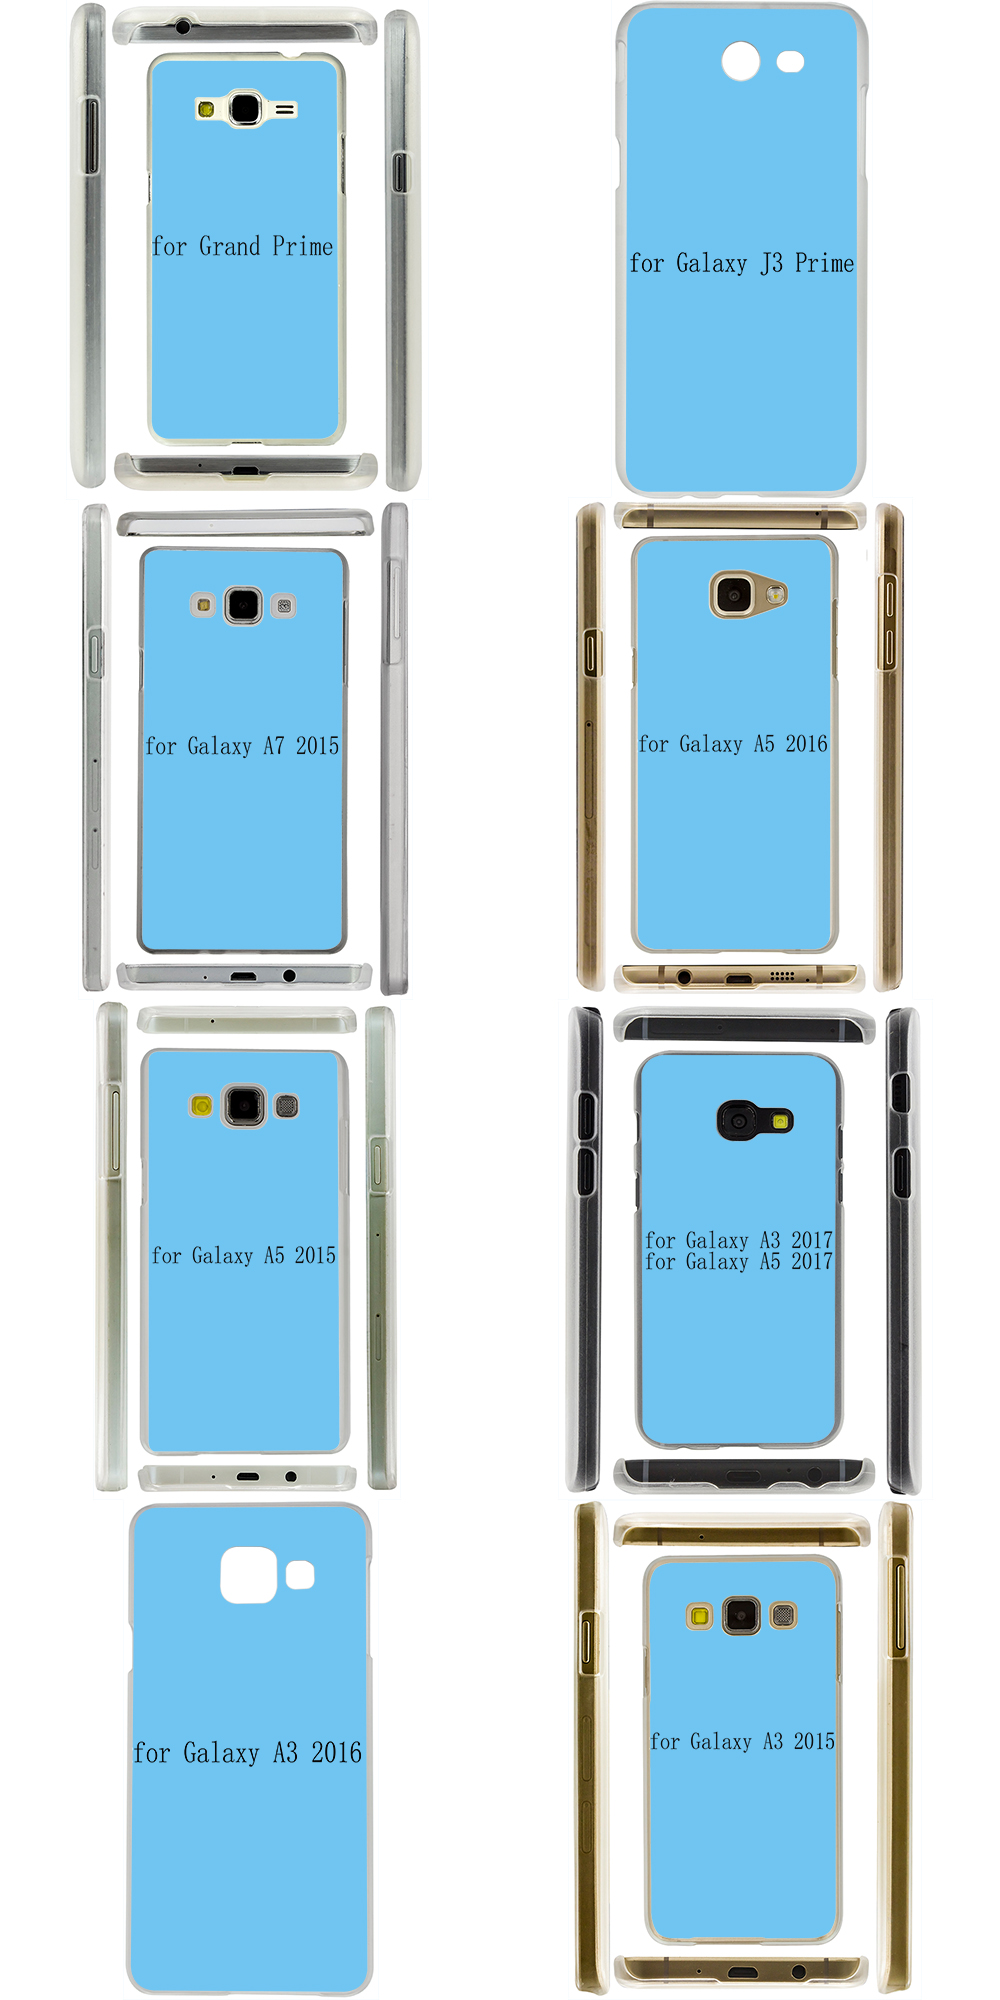 Lavaza Cool Band Daft Punk Cover Case for Samsung Galaxy A3 A5 J5 2015/2016/2017 Cases for J3 J5 Grand Prime J7